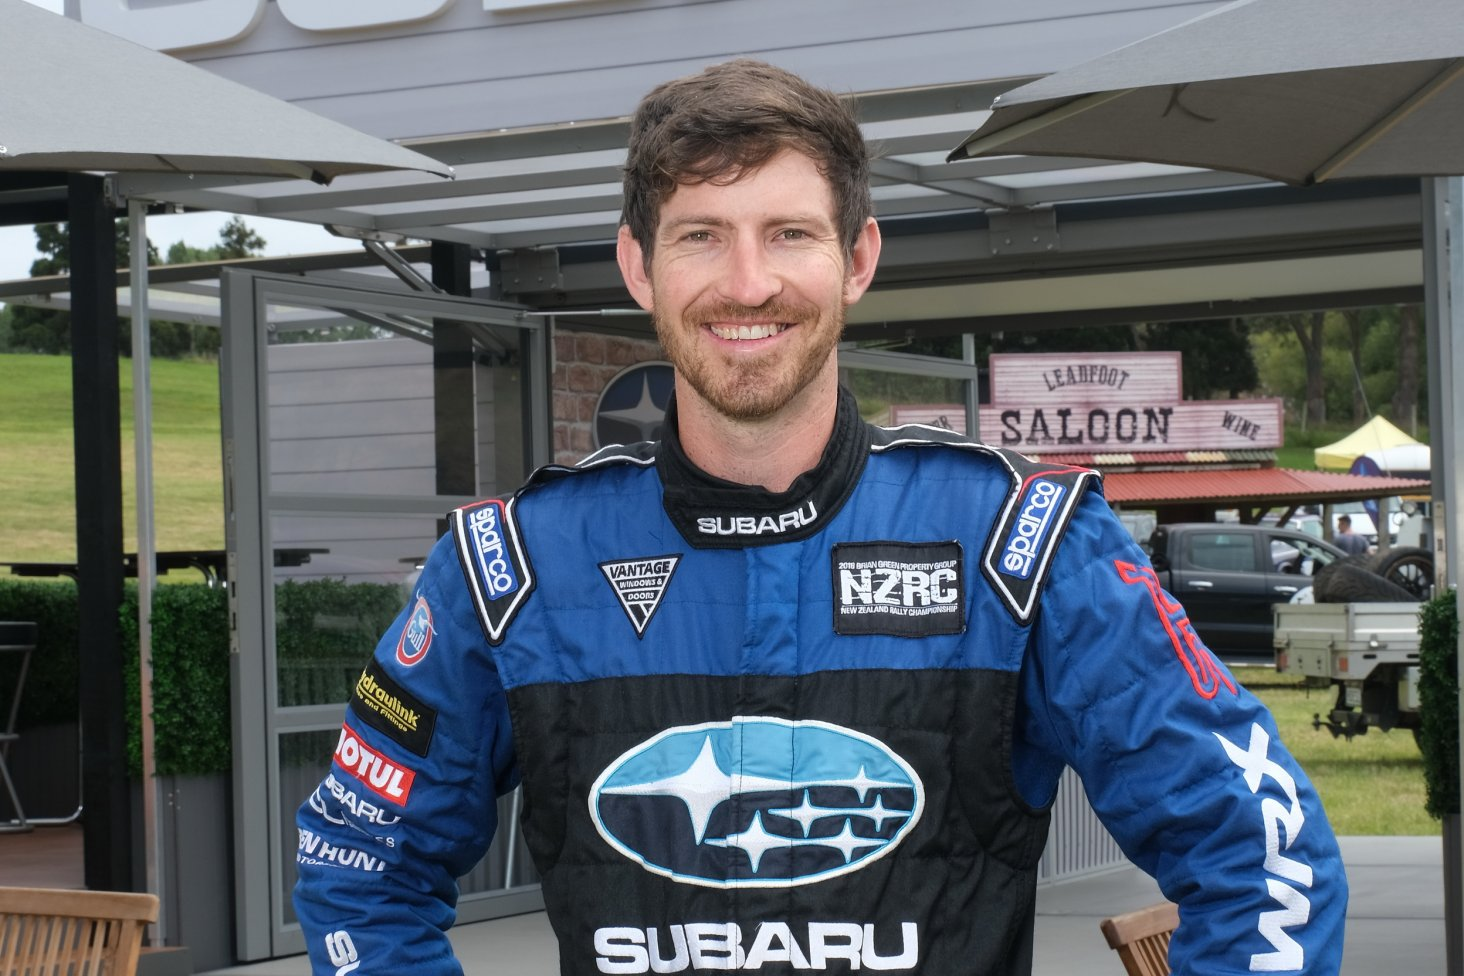 Subaru brand ambassador Ben Hunt is driving his 2004 Subaru WRX STI he built with his dad to do club rallies with at the 2019 Leadfoot Festival.